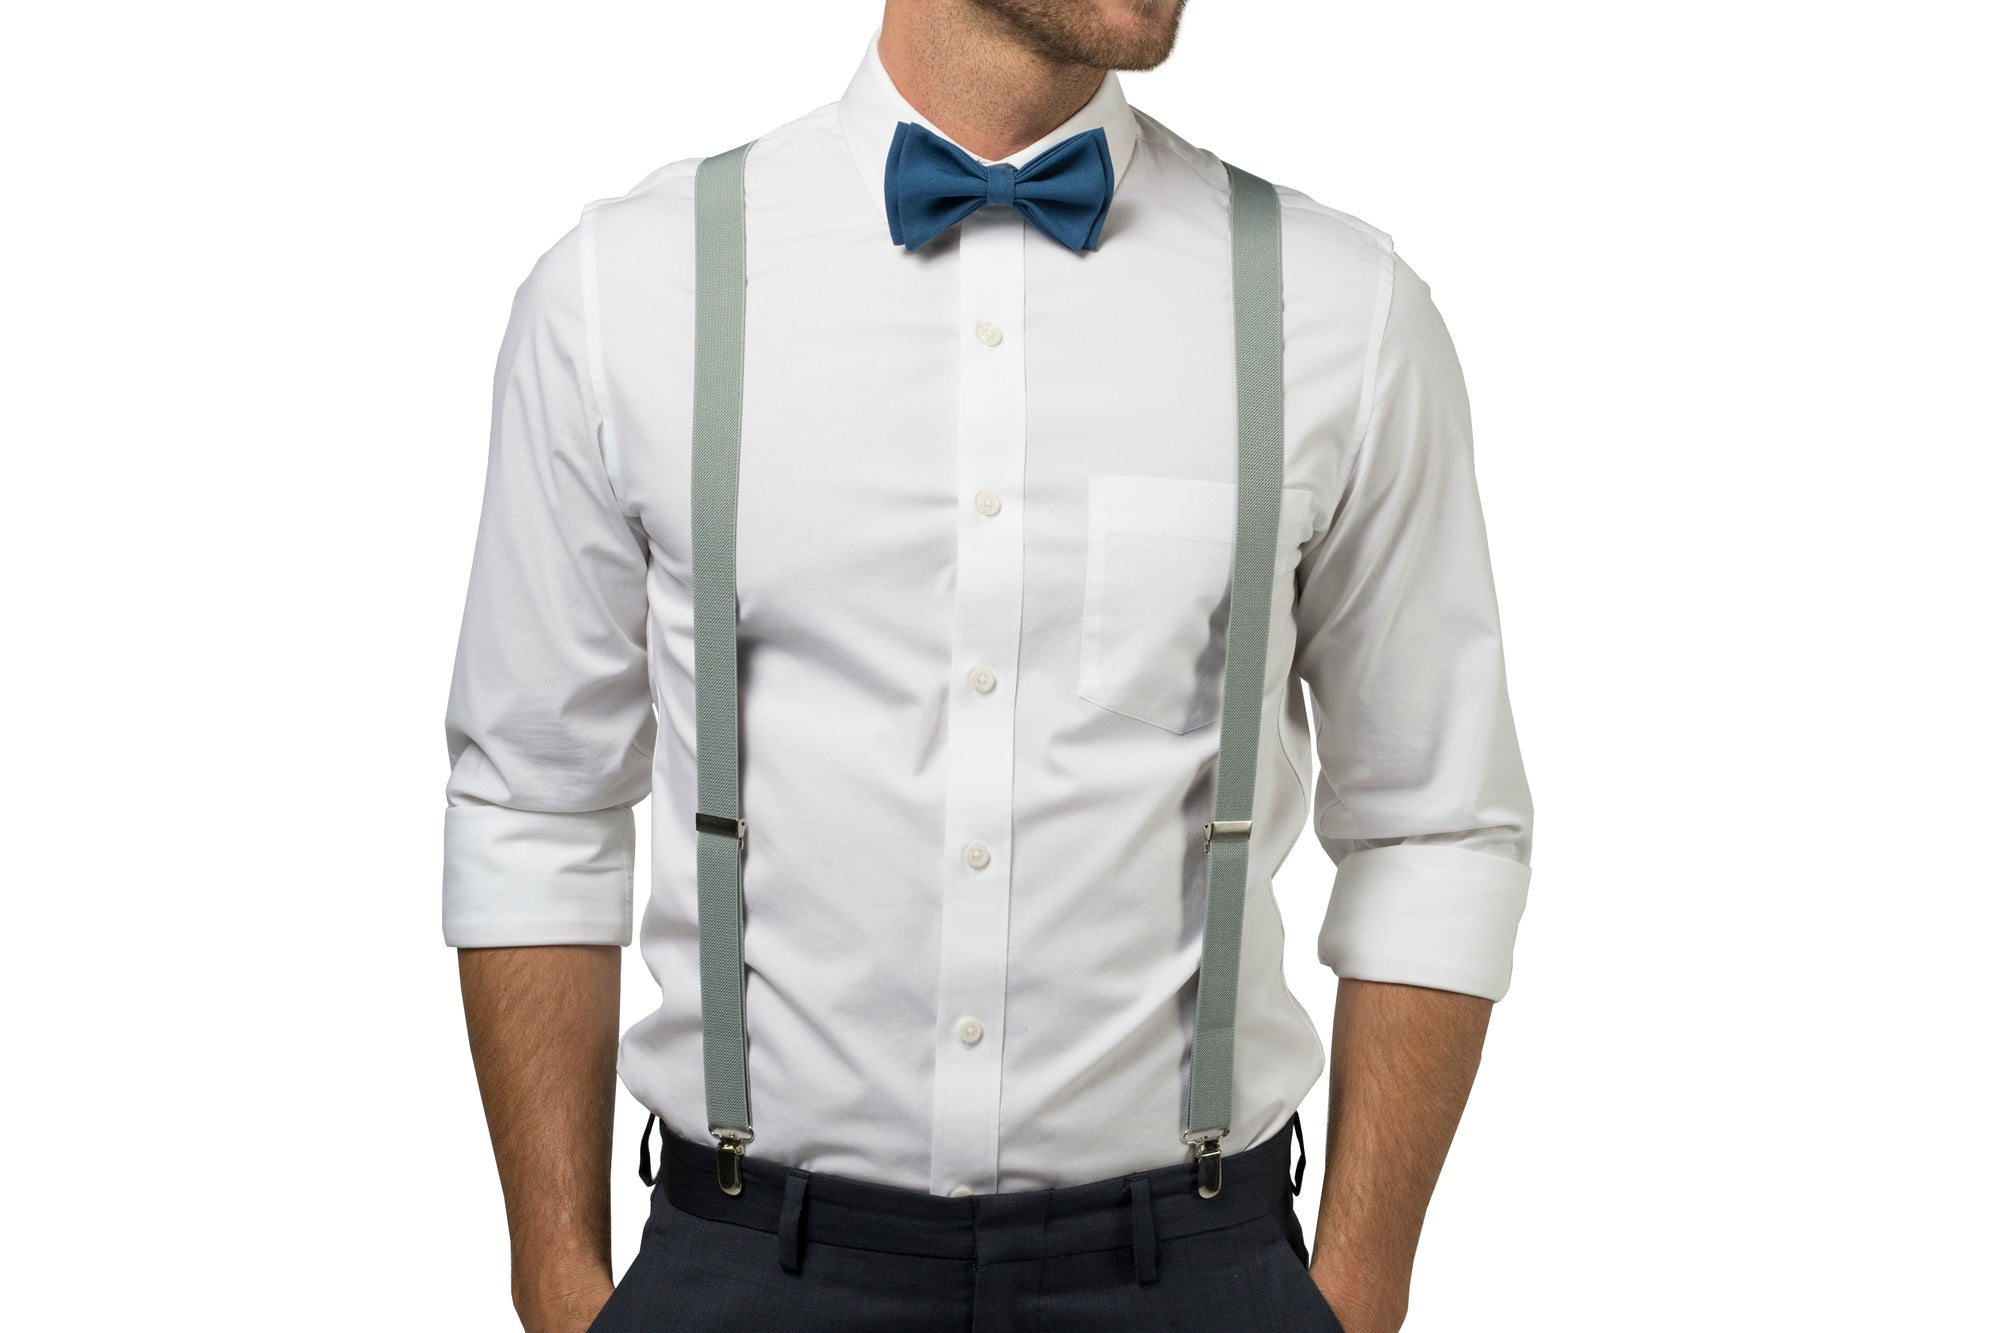 Peacock Blue Bow Tie